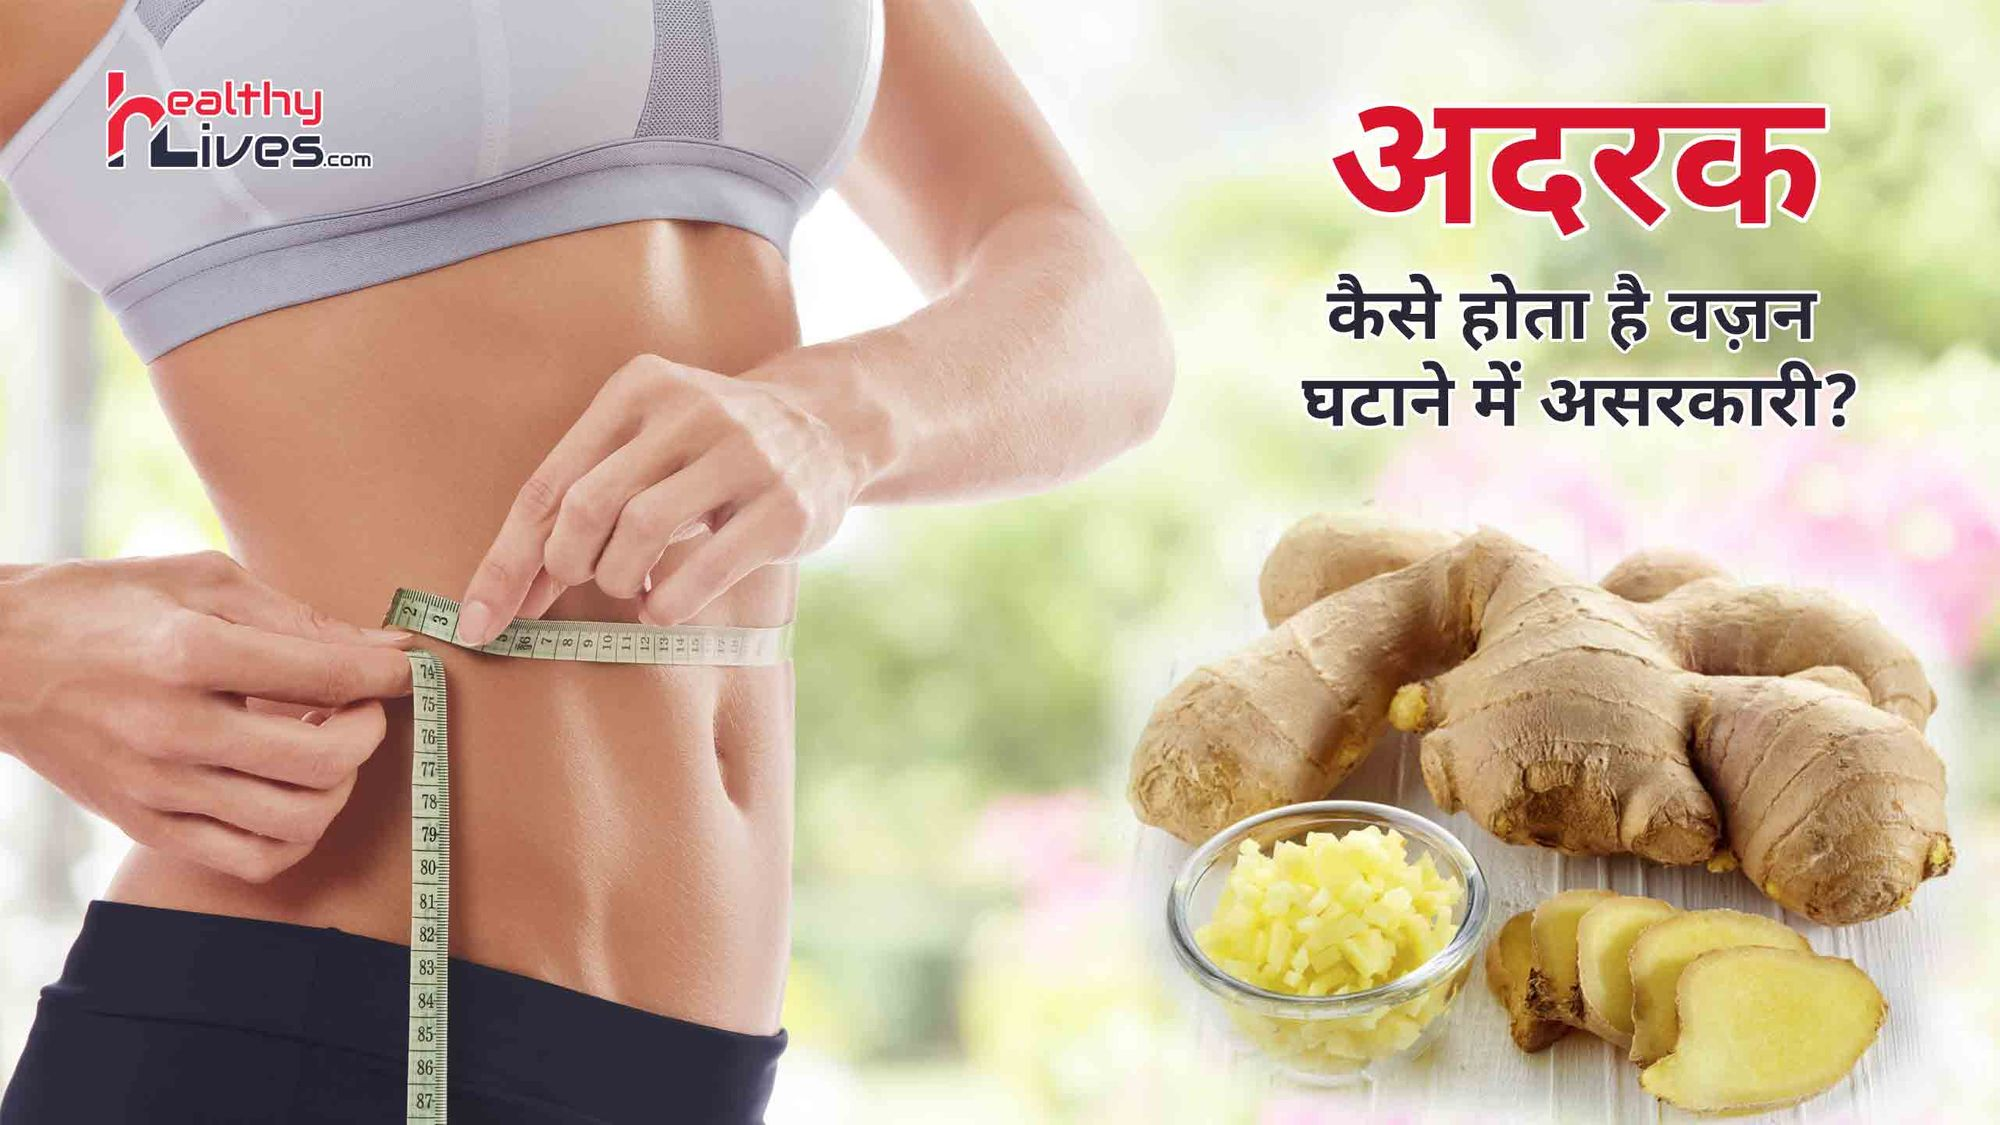 Ginger For Weight Loss: वजन कम करने का असरदार नुस्खा होता है अदरक